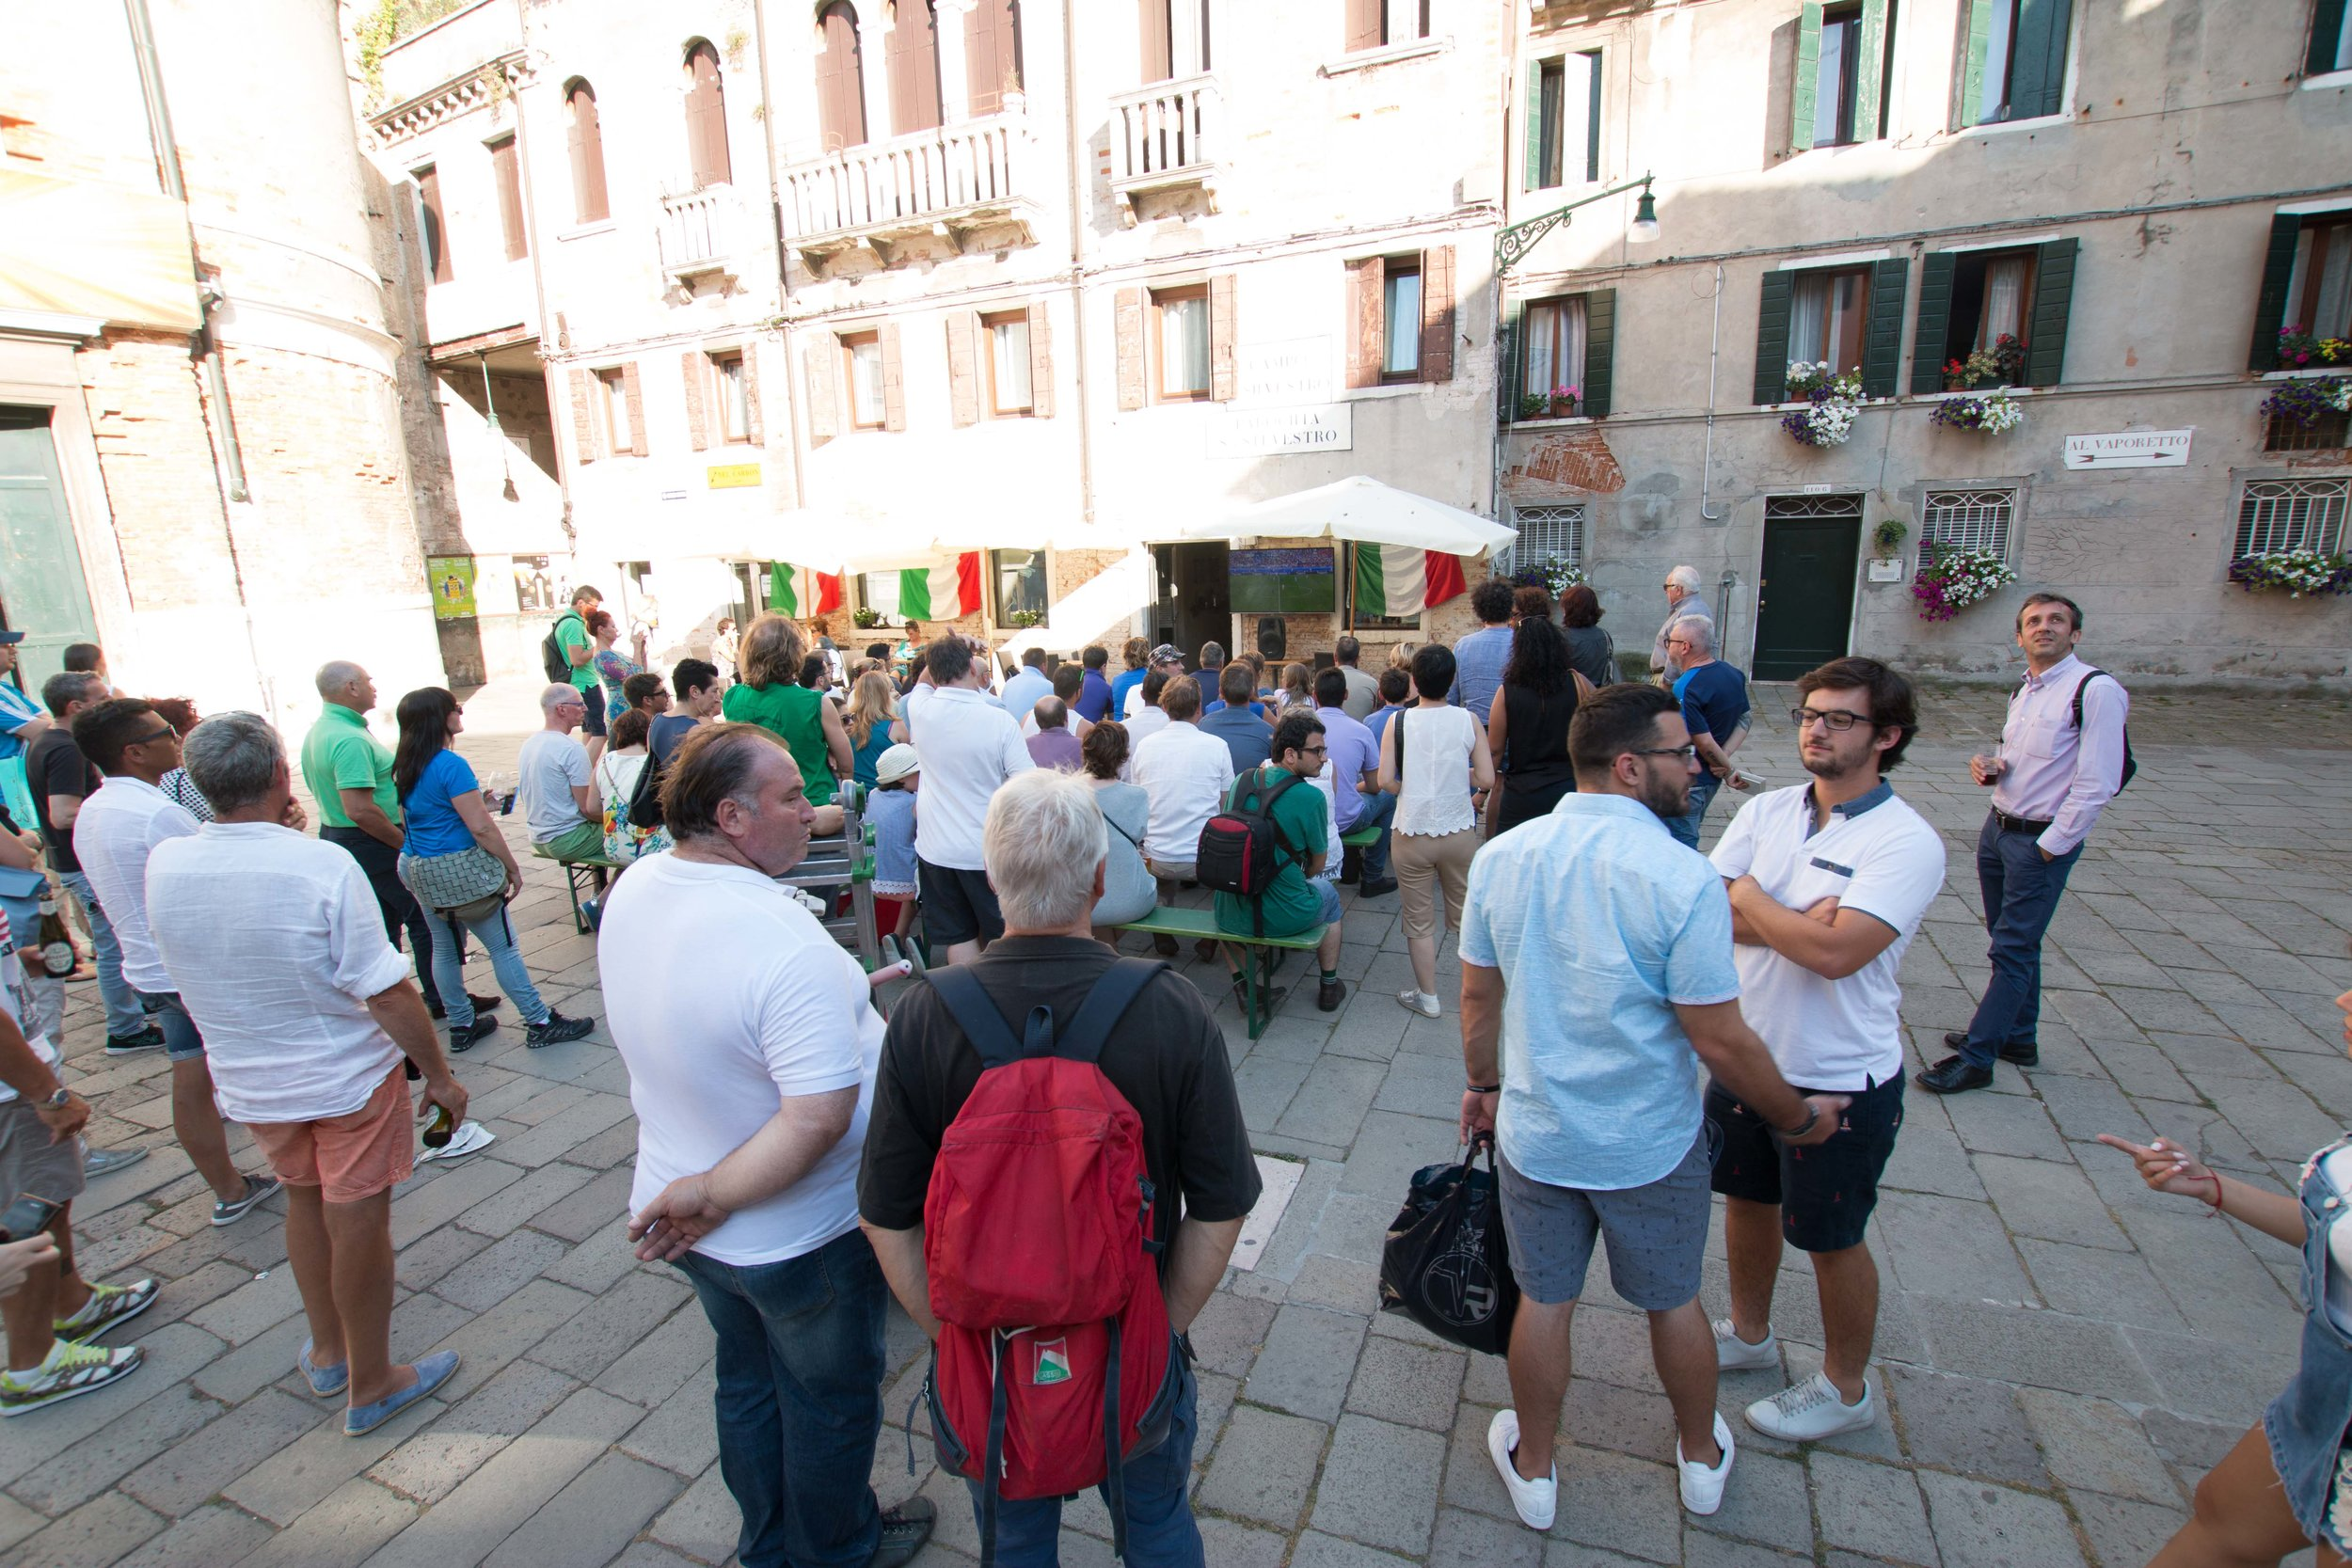 Crowd gathered to watch the Italy-Spain World Cup Match